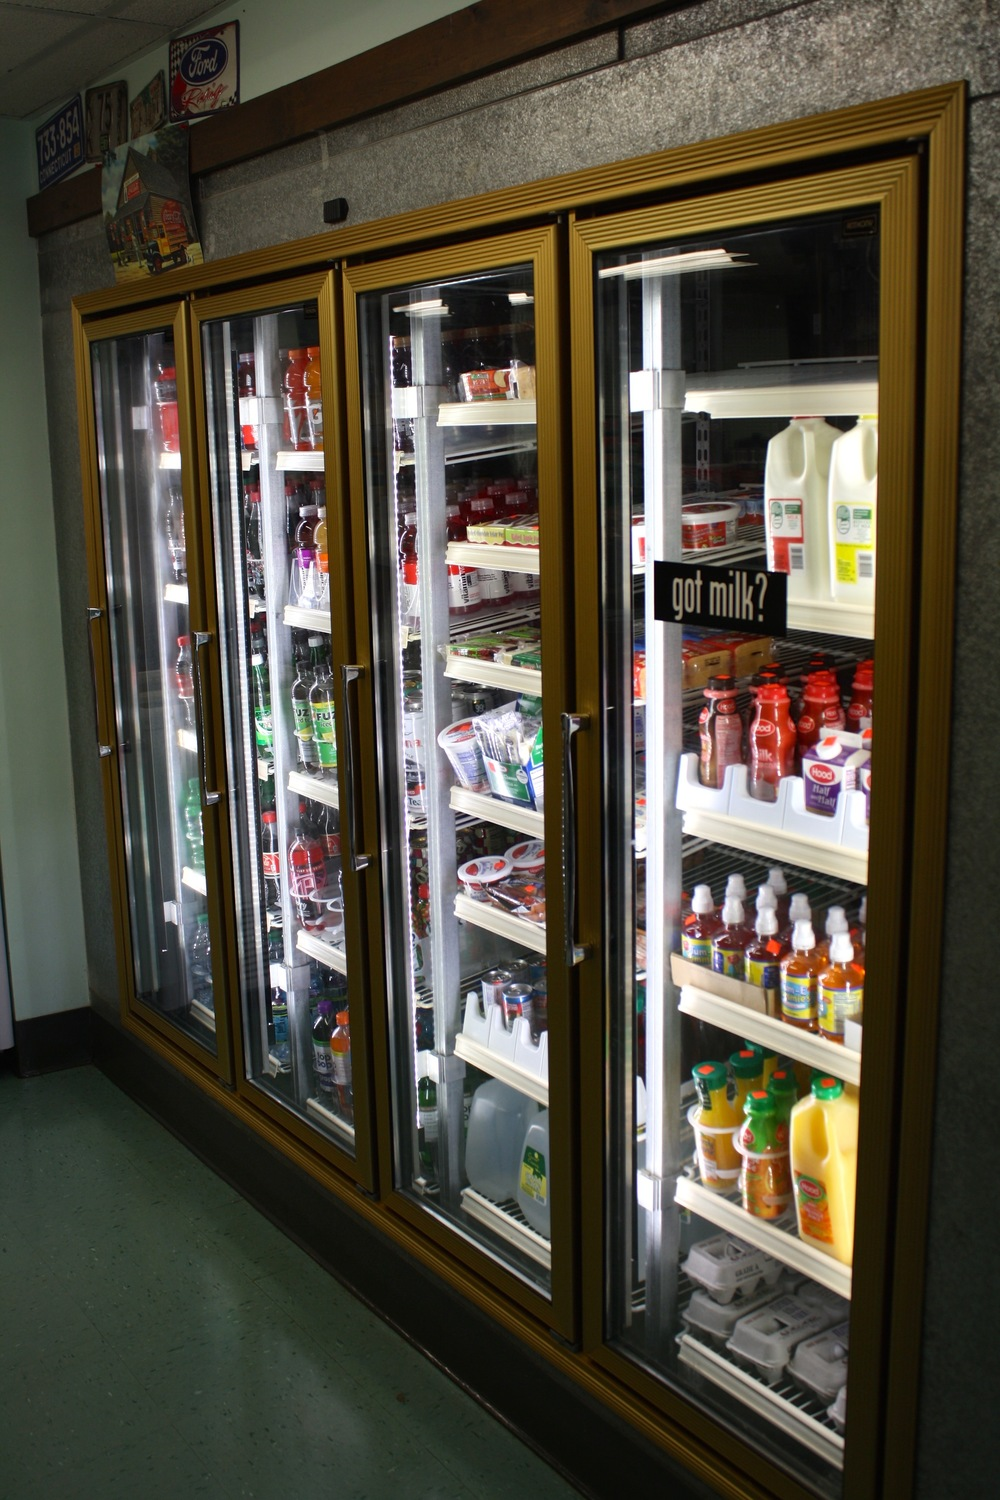 soda, water, milk, and snacks in the cooler